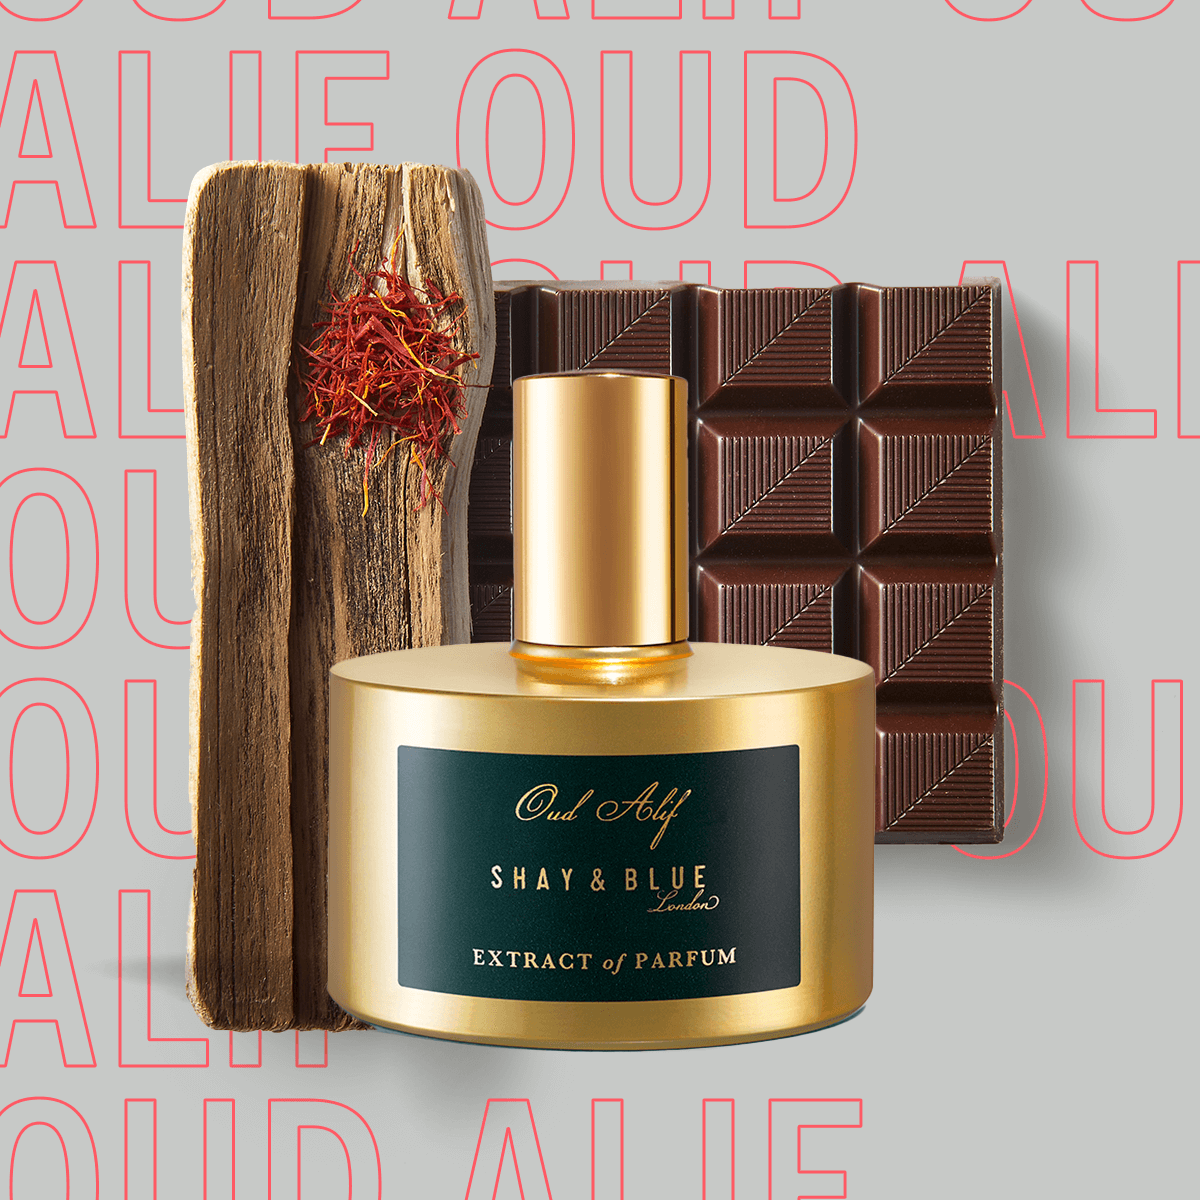 Oud Alif Extract of Parfum 60ml | The finest oud agarwood spiked with chocolat noir, saffron and dark patchouli. | Clean All Gender Fragrance | Shay & Blue